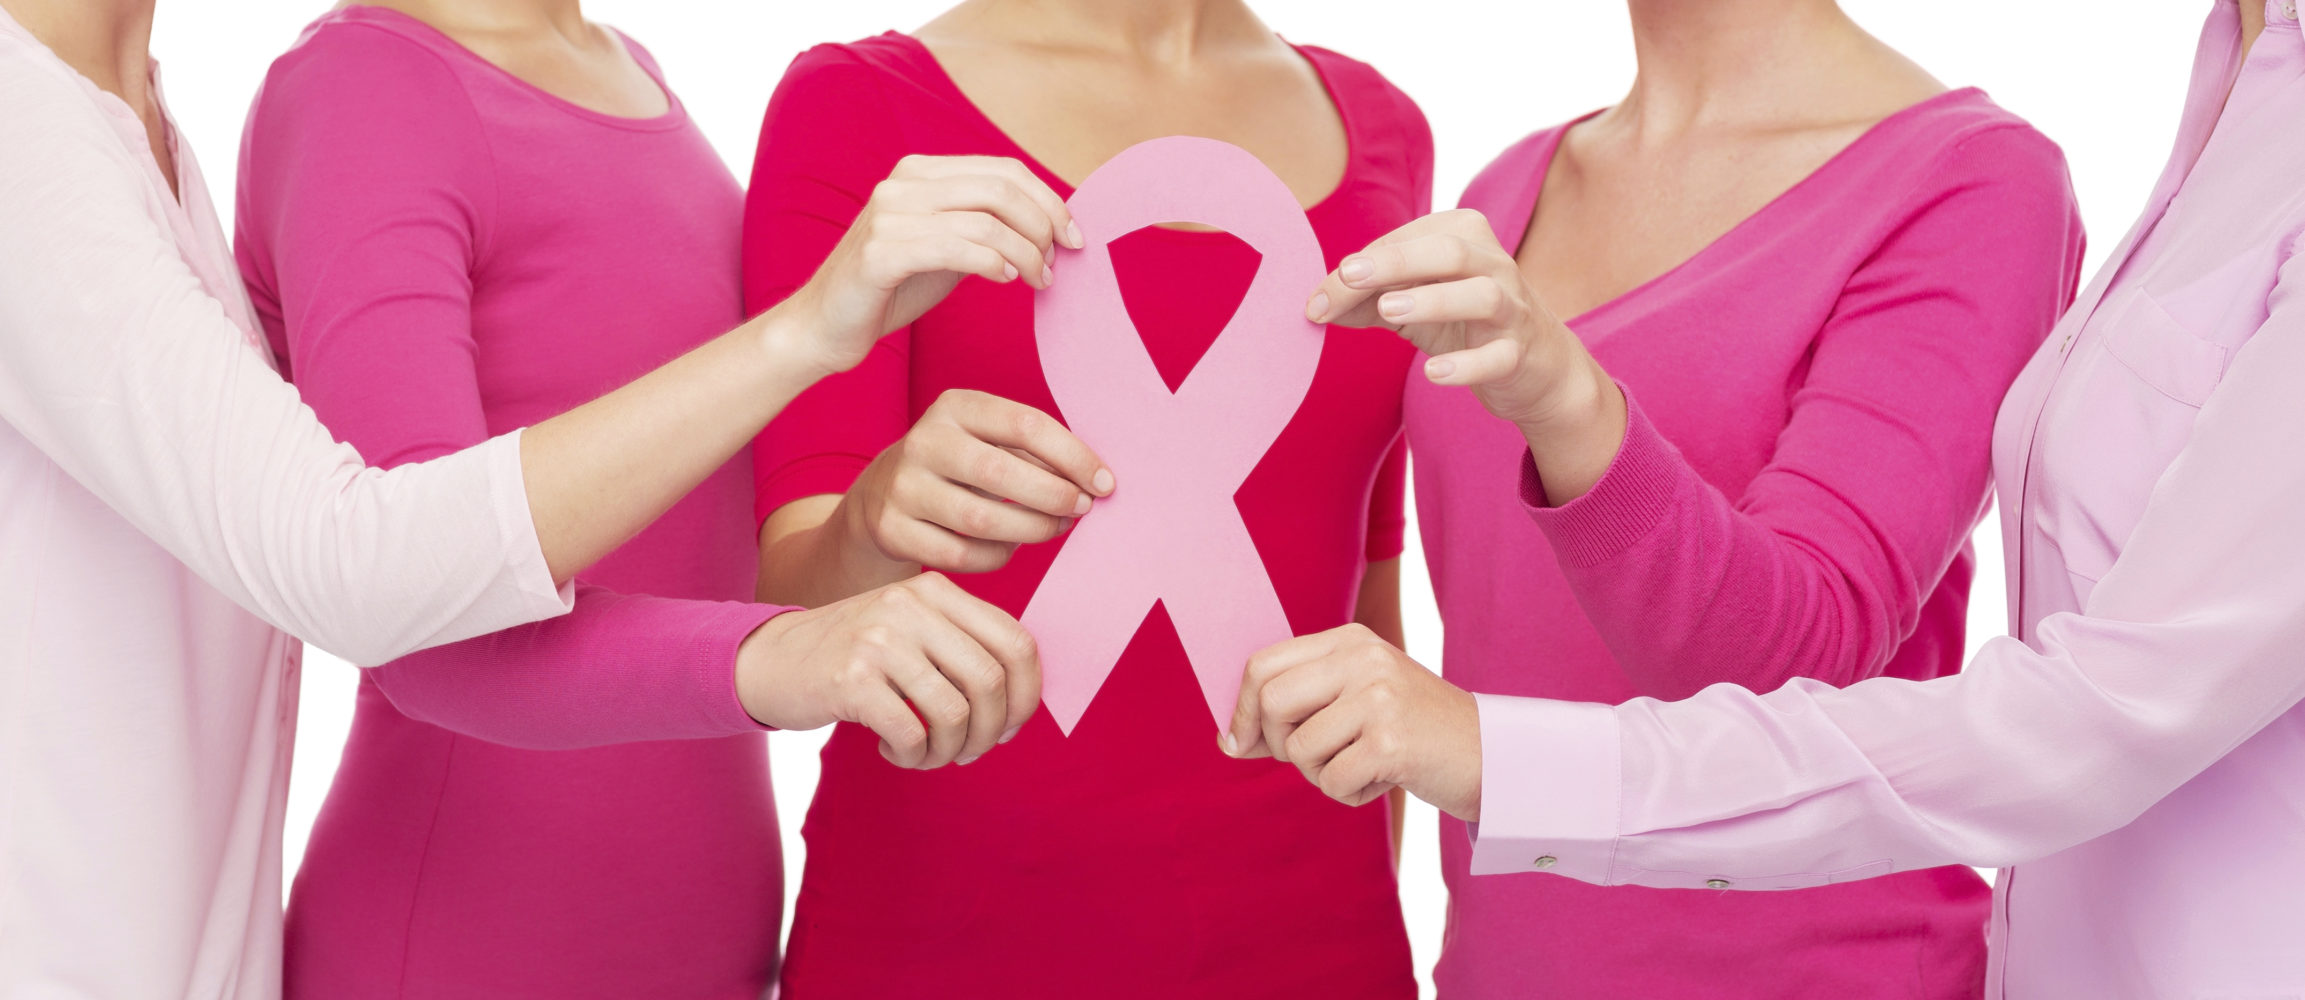 healthcare, people and medicine concept - close up of women in blank shirts with pink breast cancer awareness ribbon over white background